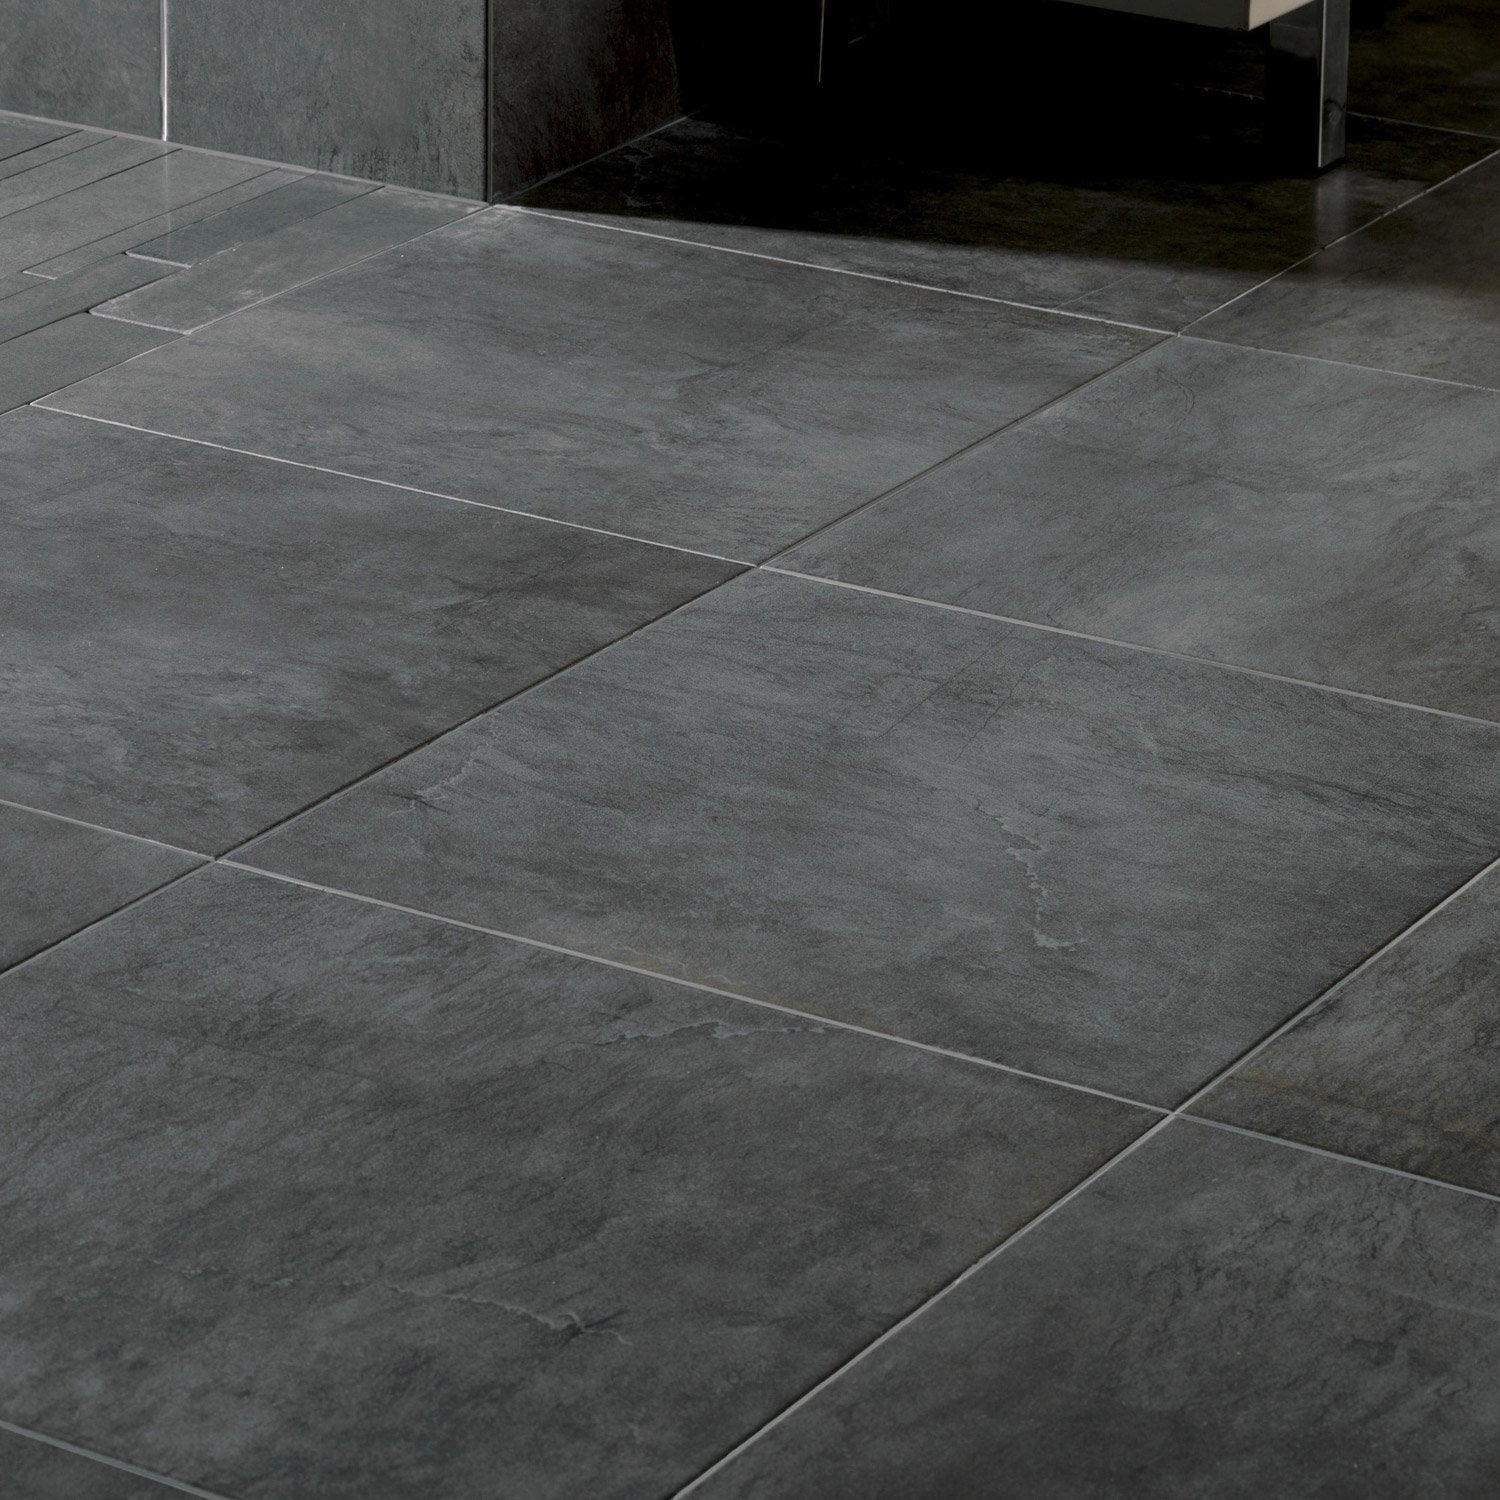 Carrelage gris anthracite for Carrelage 60x60 gris anthracite